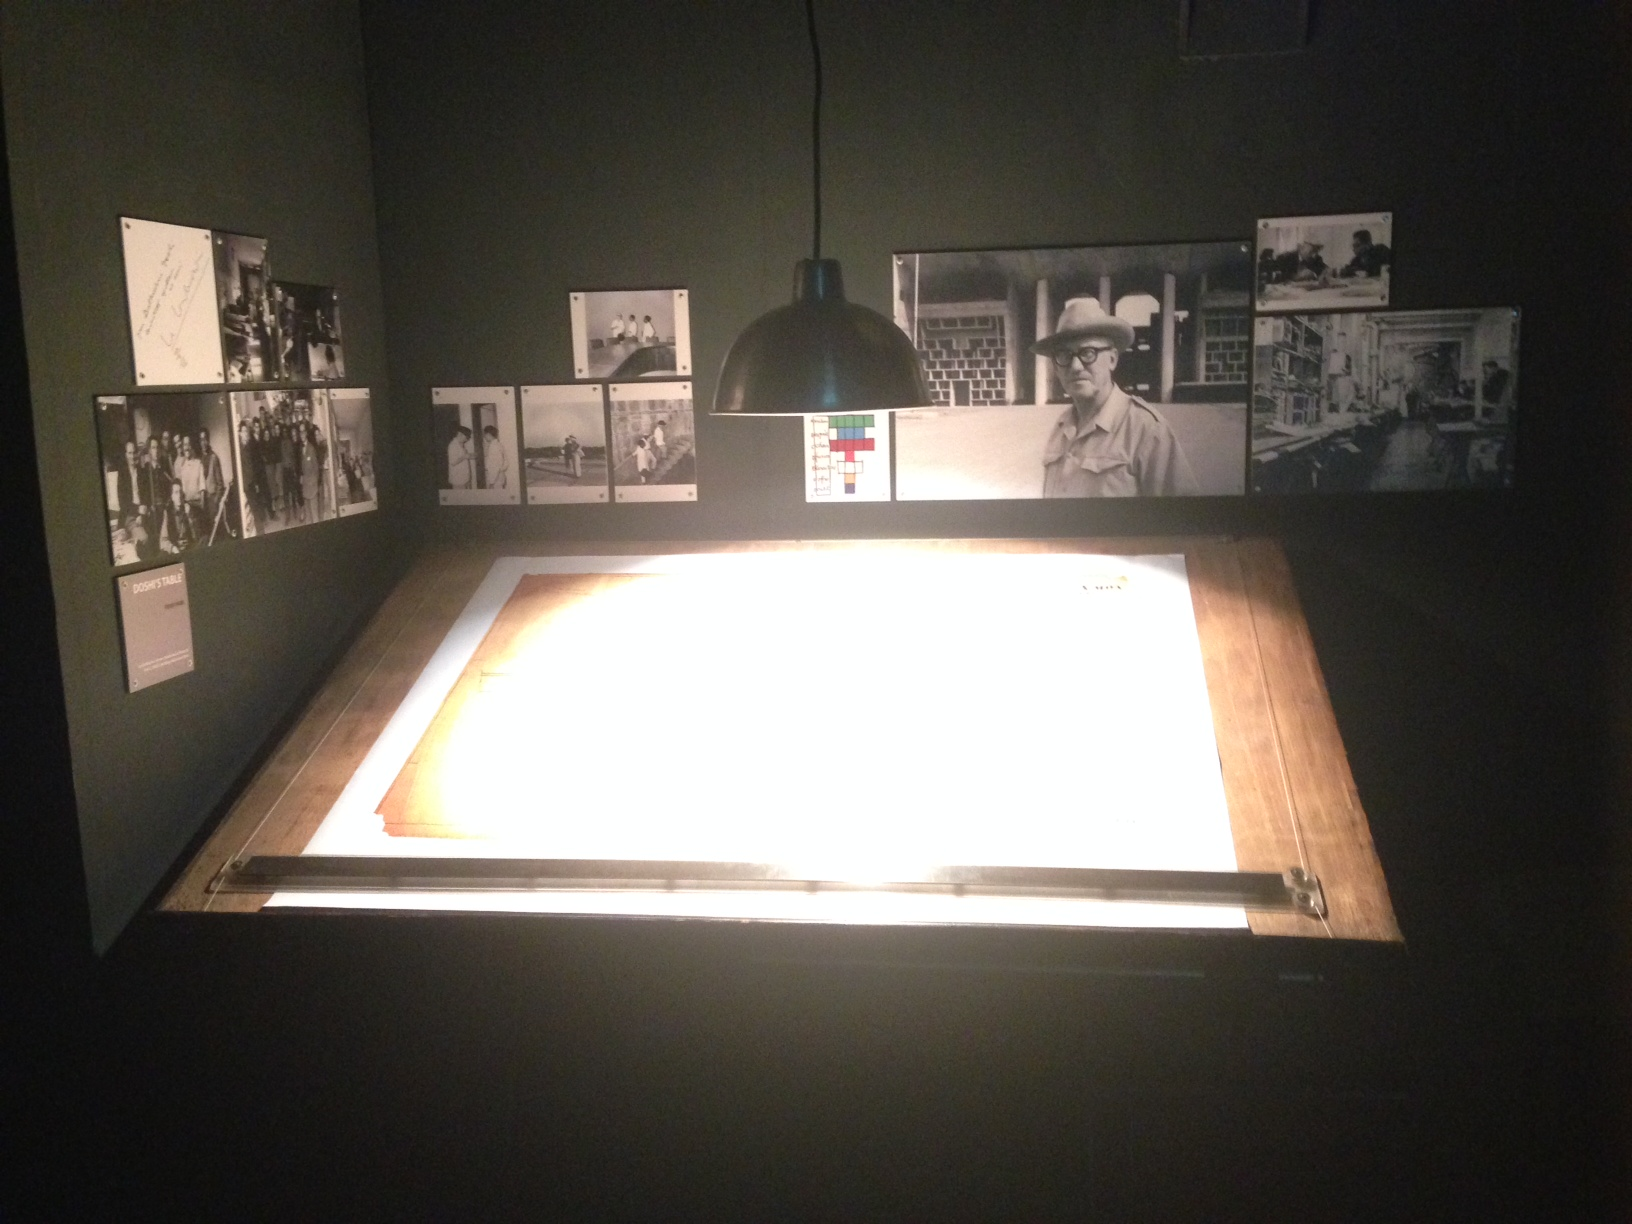 A part of the display (architectural drawings with photographs of Doshi at different sites